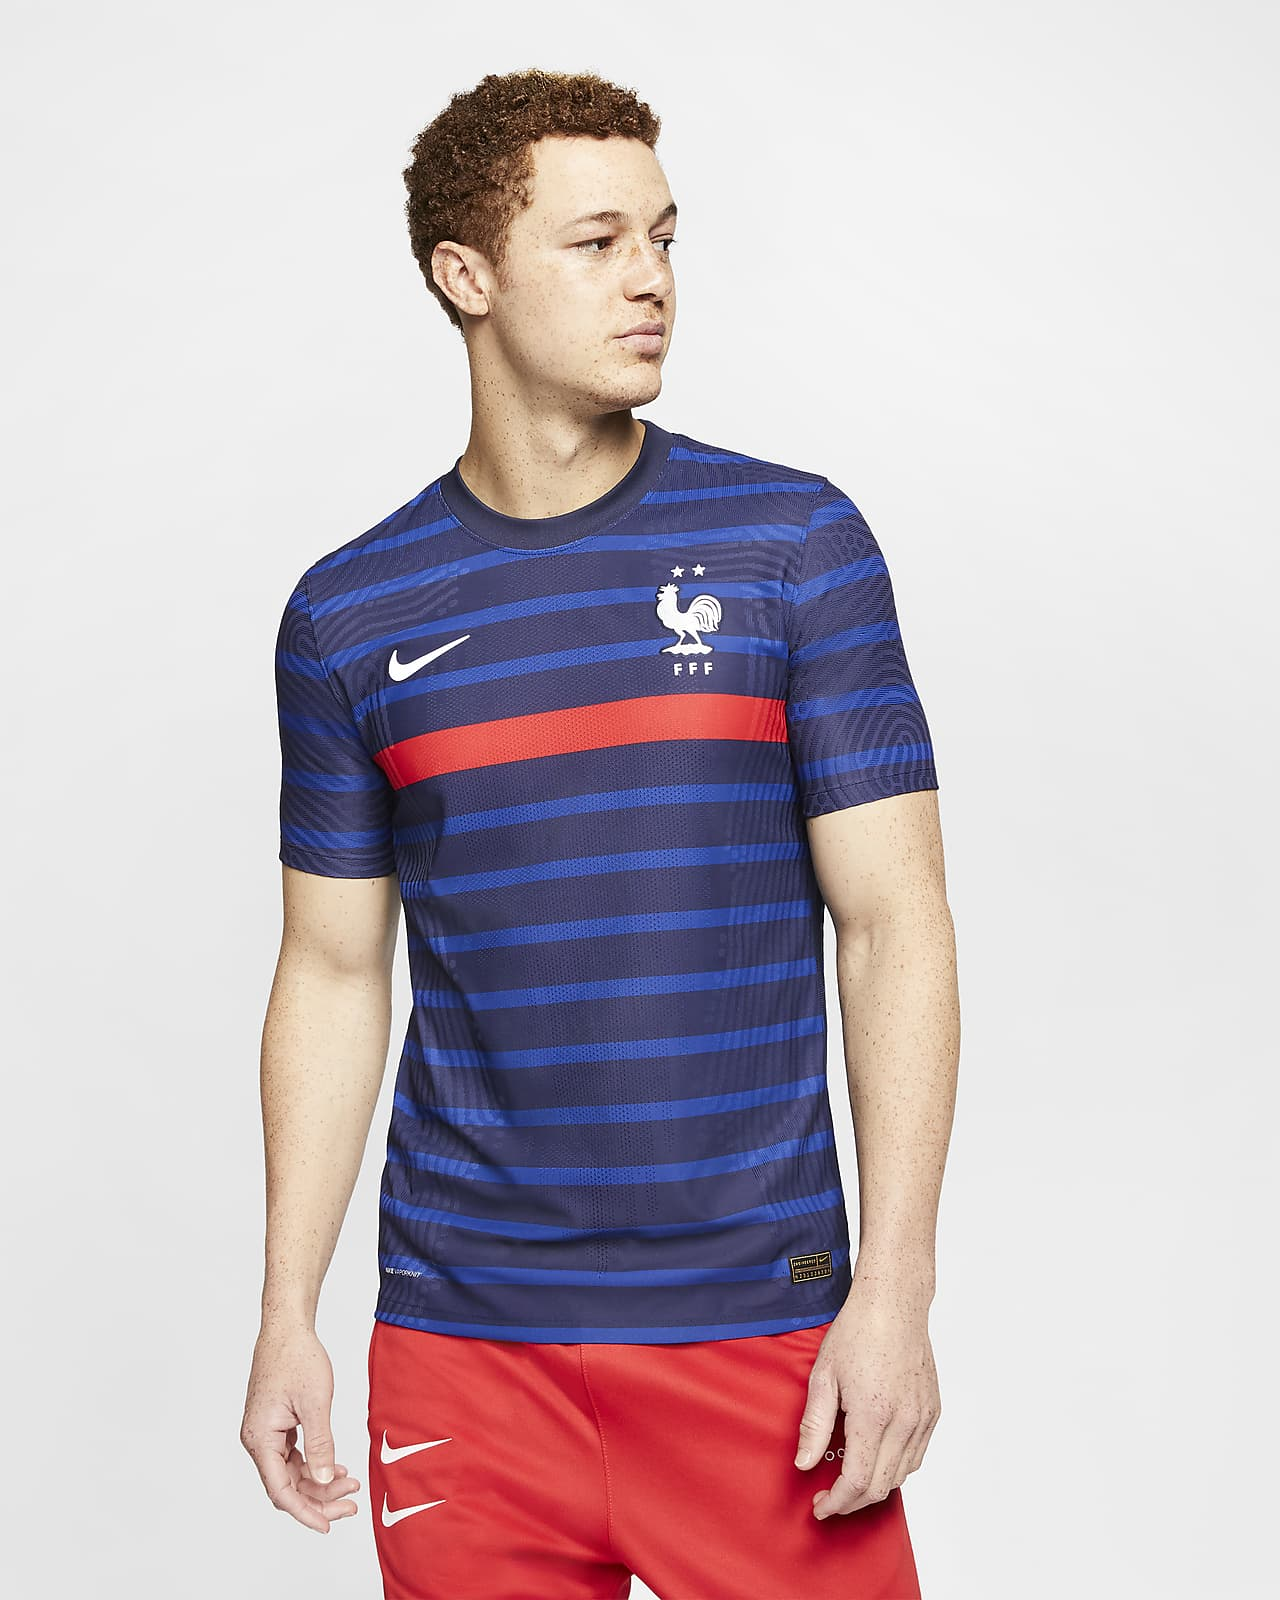 FFF 2020 Vapor Match Home Men's Football Shirt